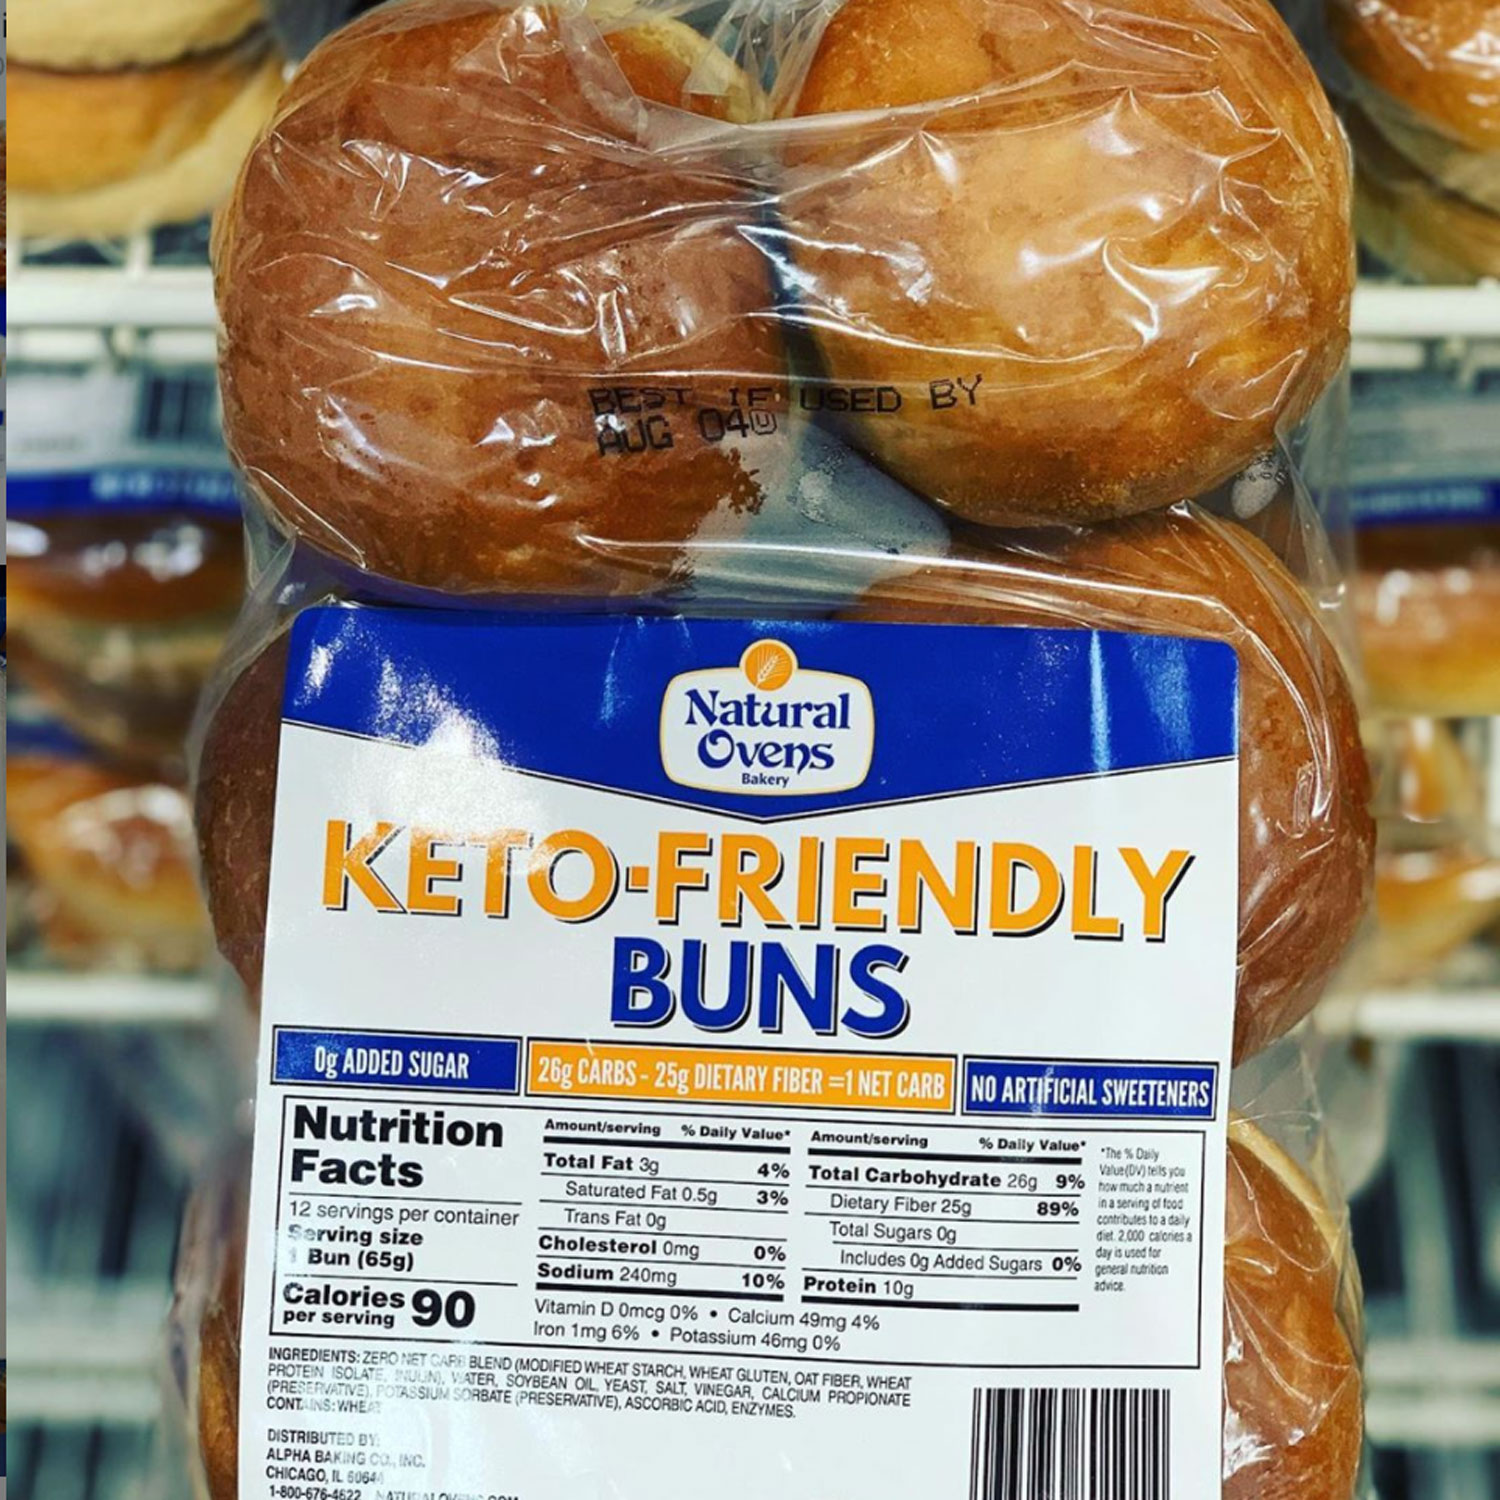 Costco Rsquo S Keto Friendly Hamburger Buns Only Have 1 Net Carb Mdash But Are They Healthy Eatingwell